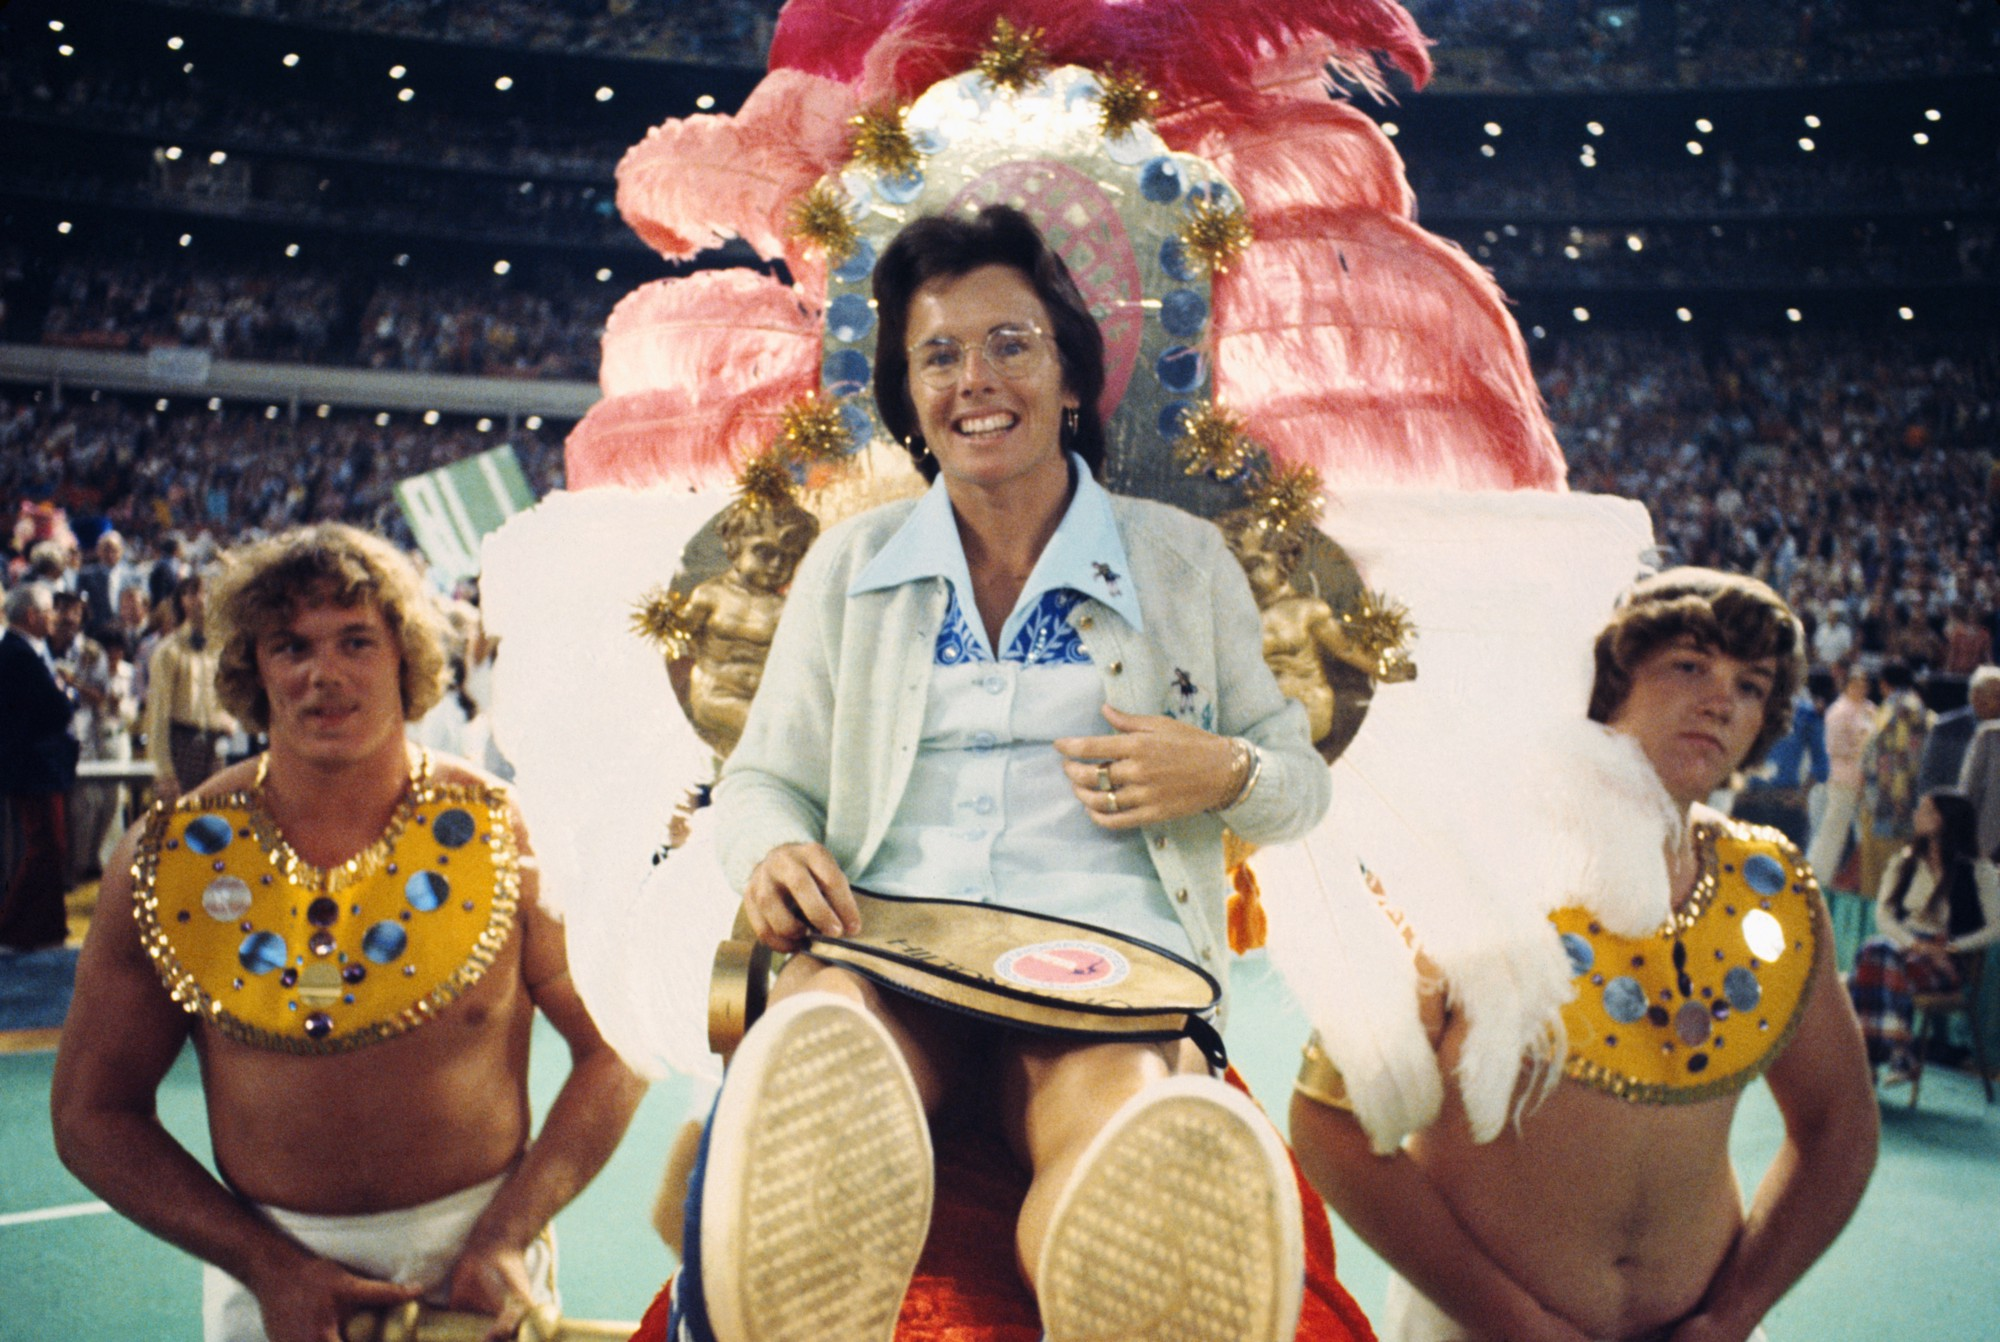 Billie jean king battle of the sexes picture 142